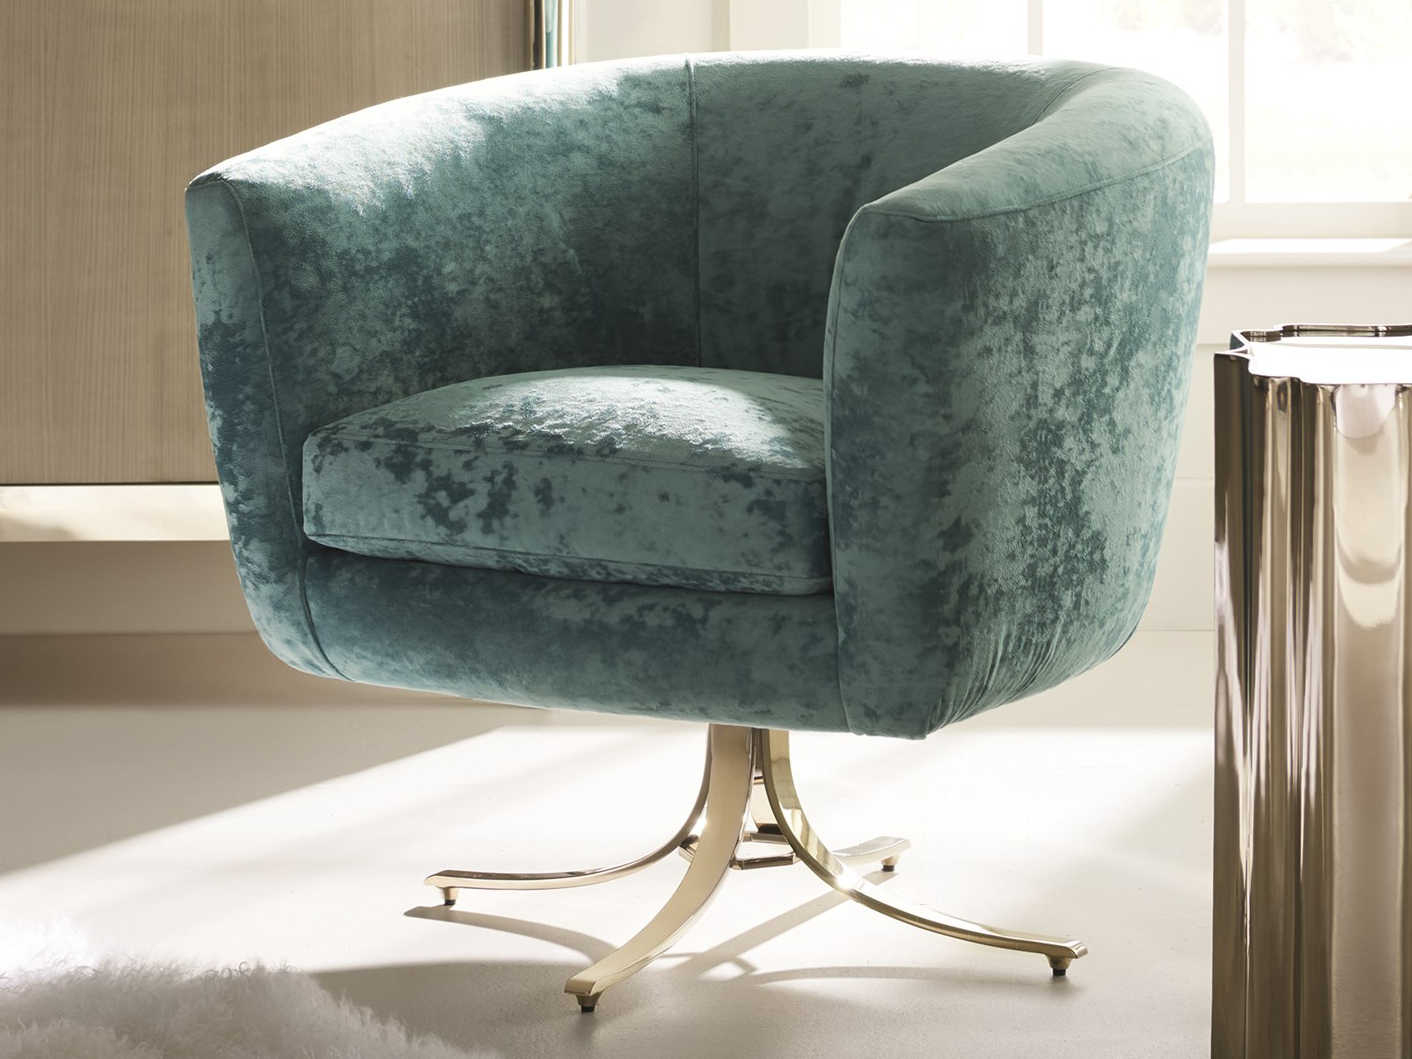 Caracole Classic Twirl Around Turquoise / Whisper Of Gold Accent Intended For Twirl Swivel Accent Chairs (Photo 3 of 20)